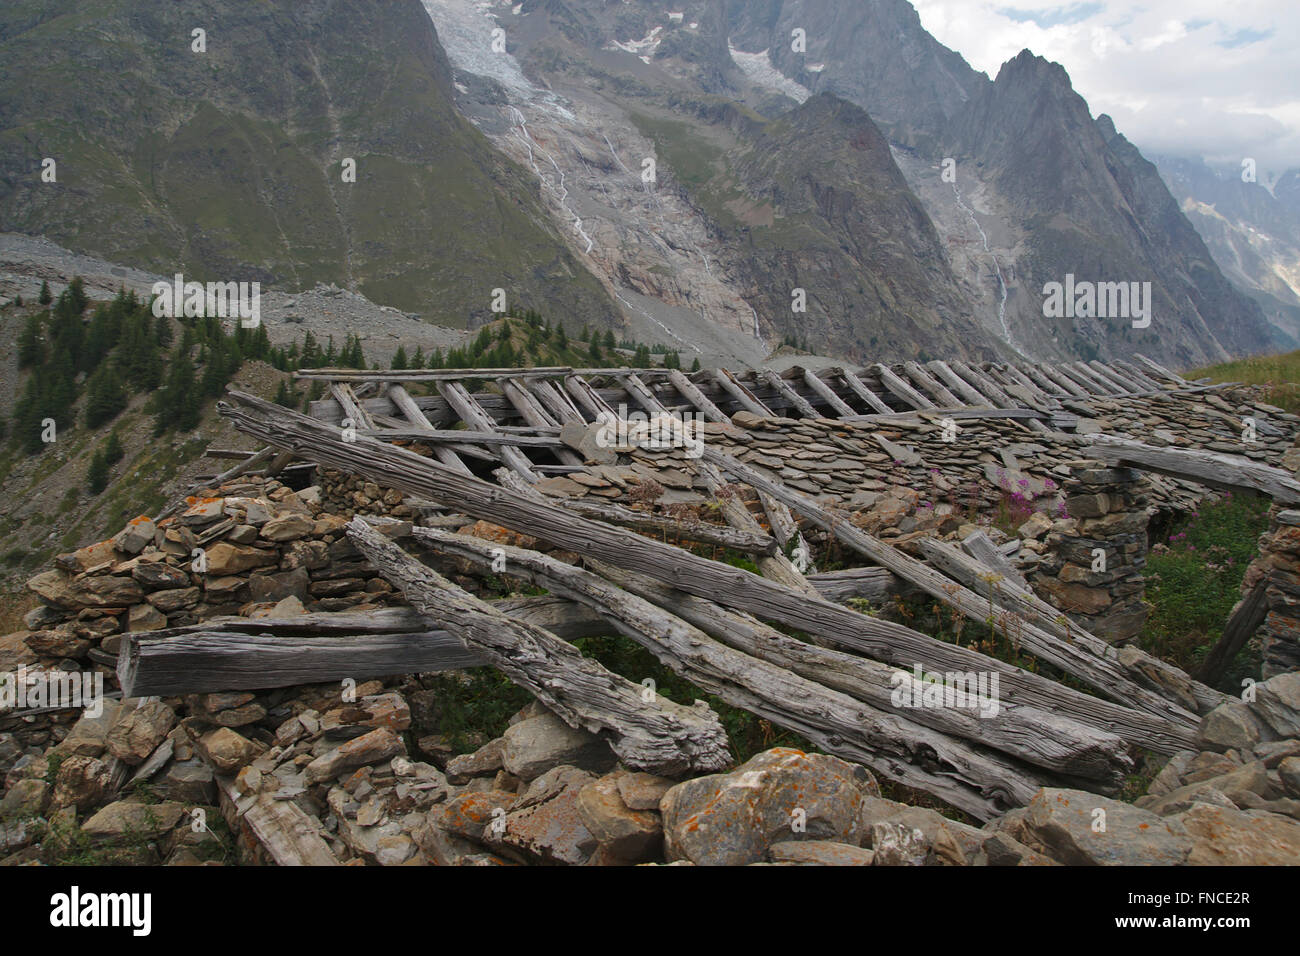 Ruin of a house on a Alp in Val Veny, Mont Blanc Massif, Italy - Stock Image